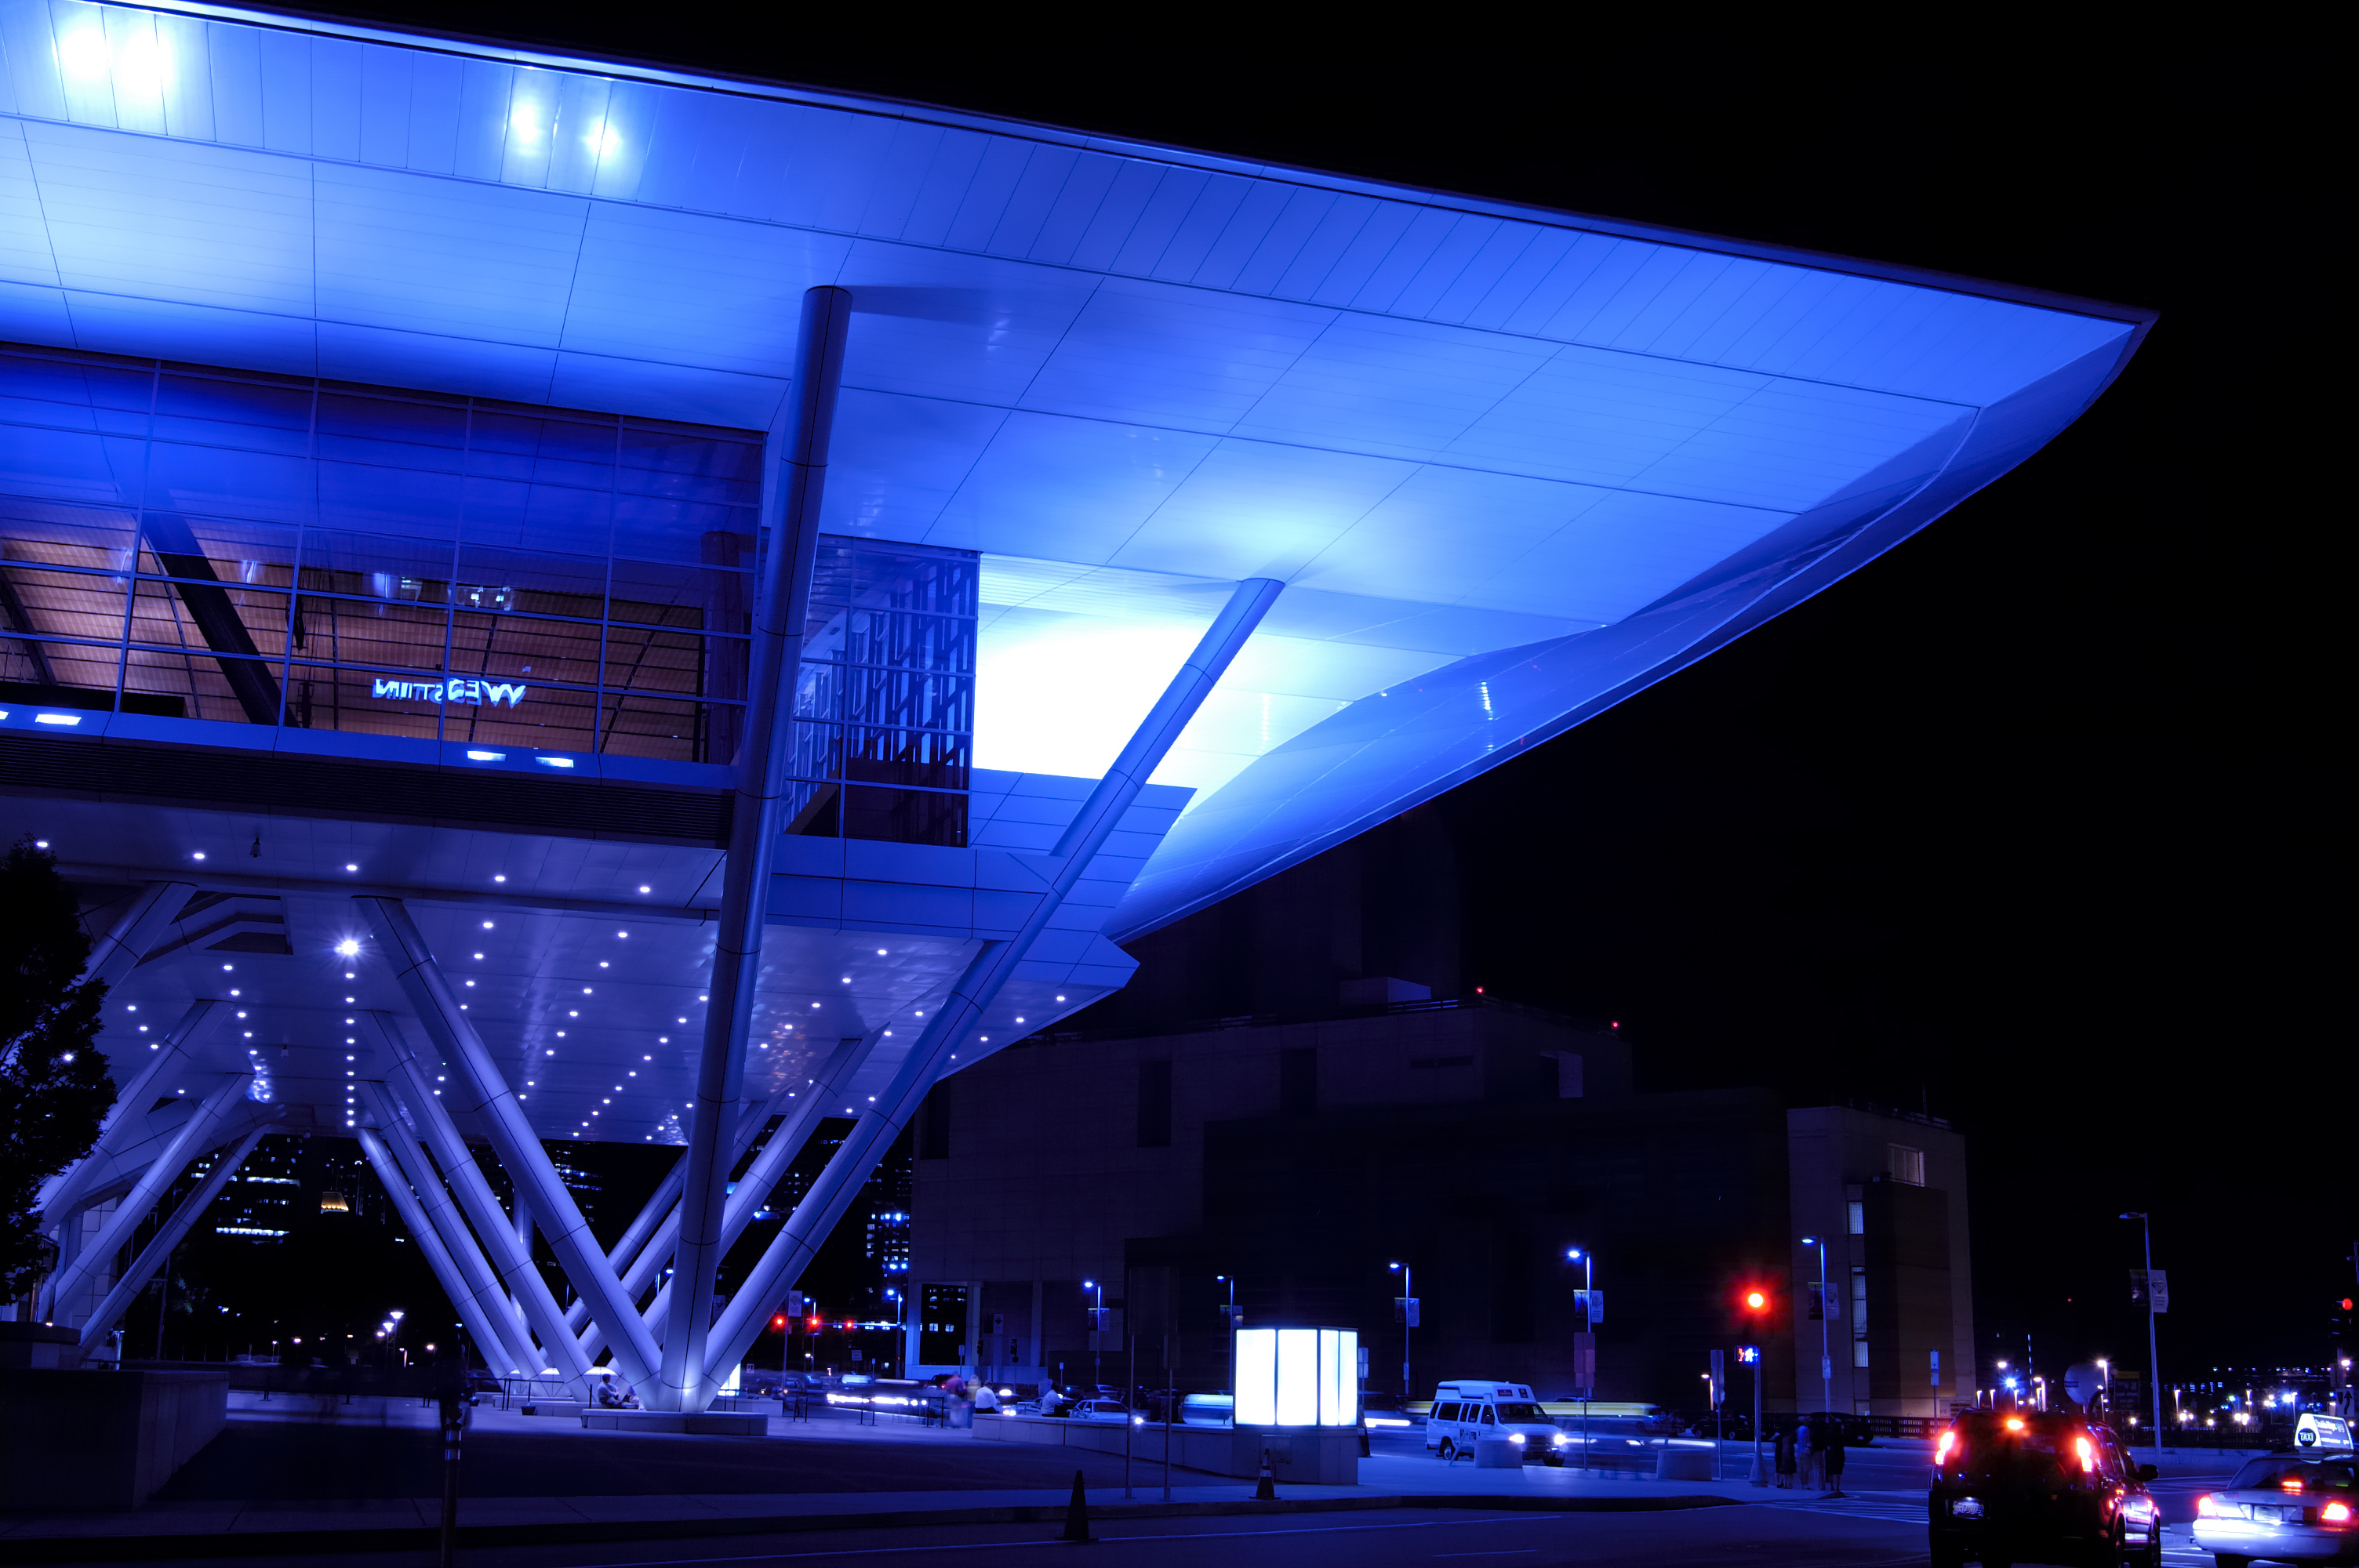 The glowing exterior of a major convention center at night.